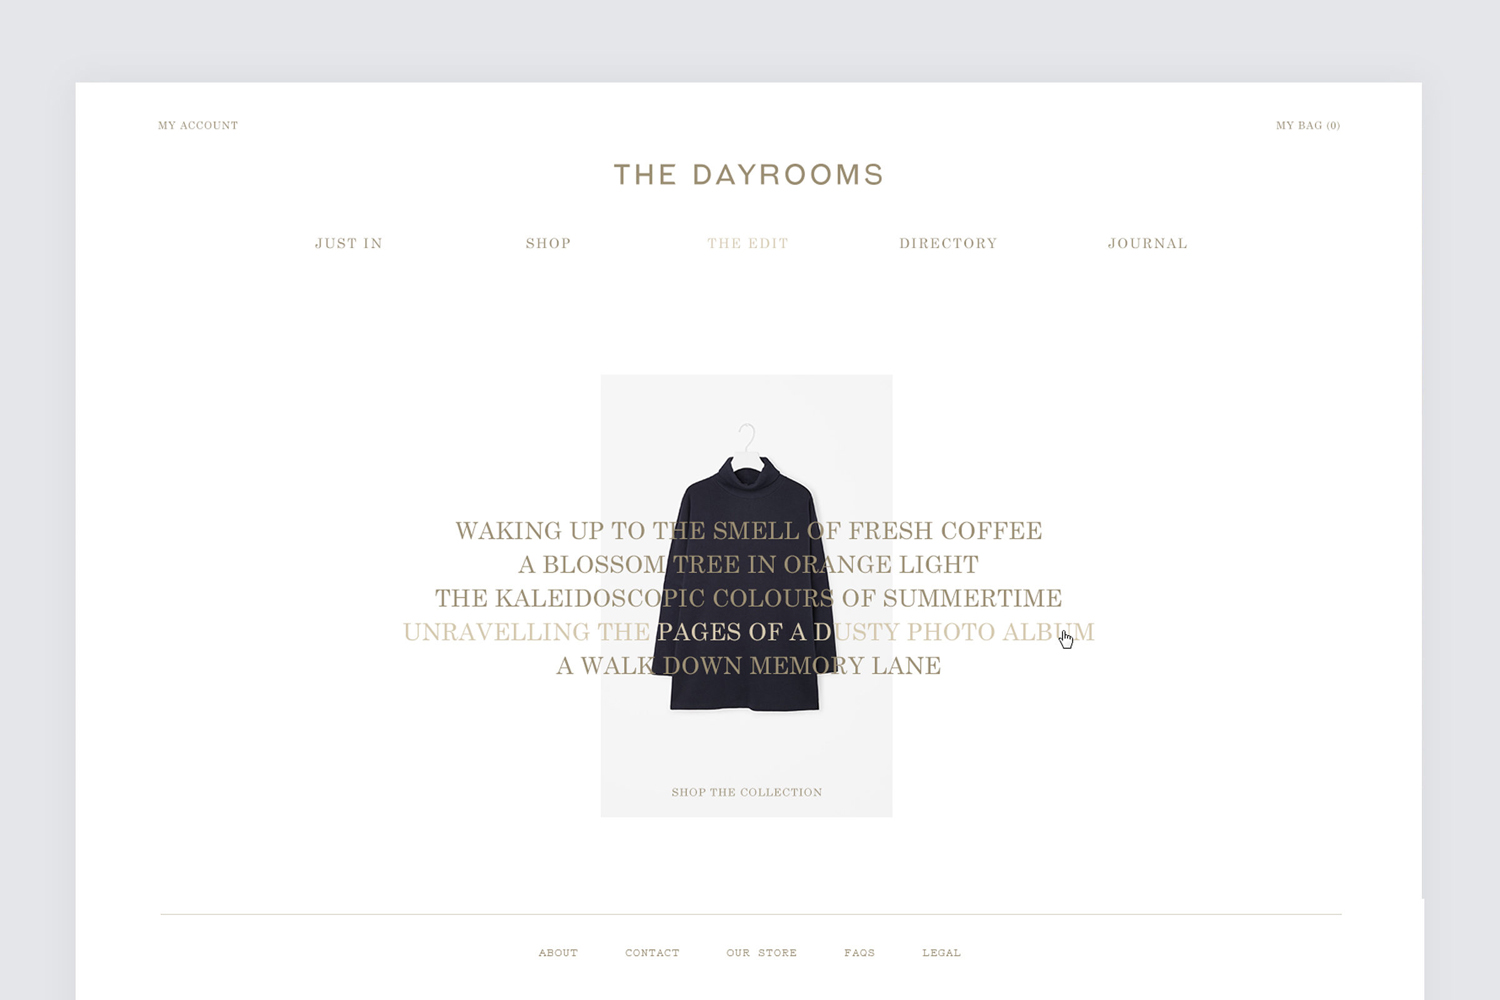 Brand identity and website design by Two Times Elliott for Australian fashion boutique in London The Dayrooms